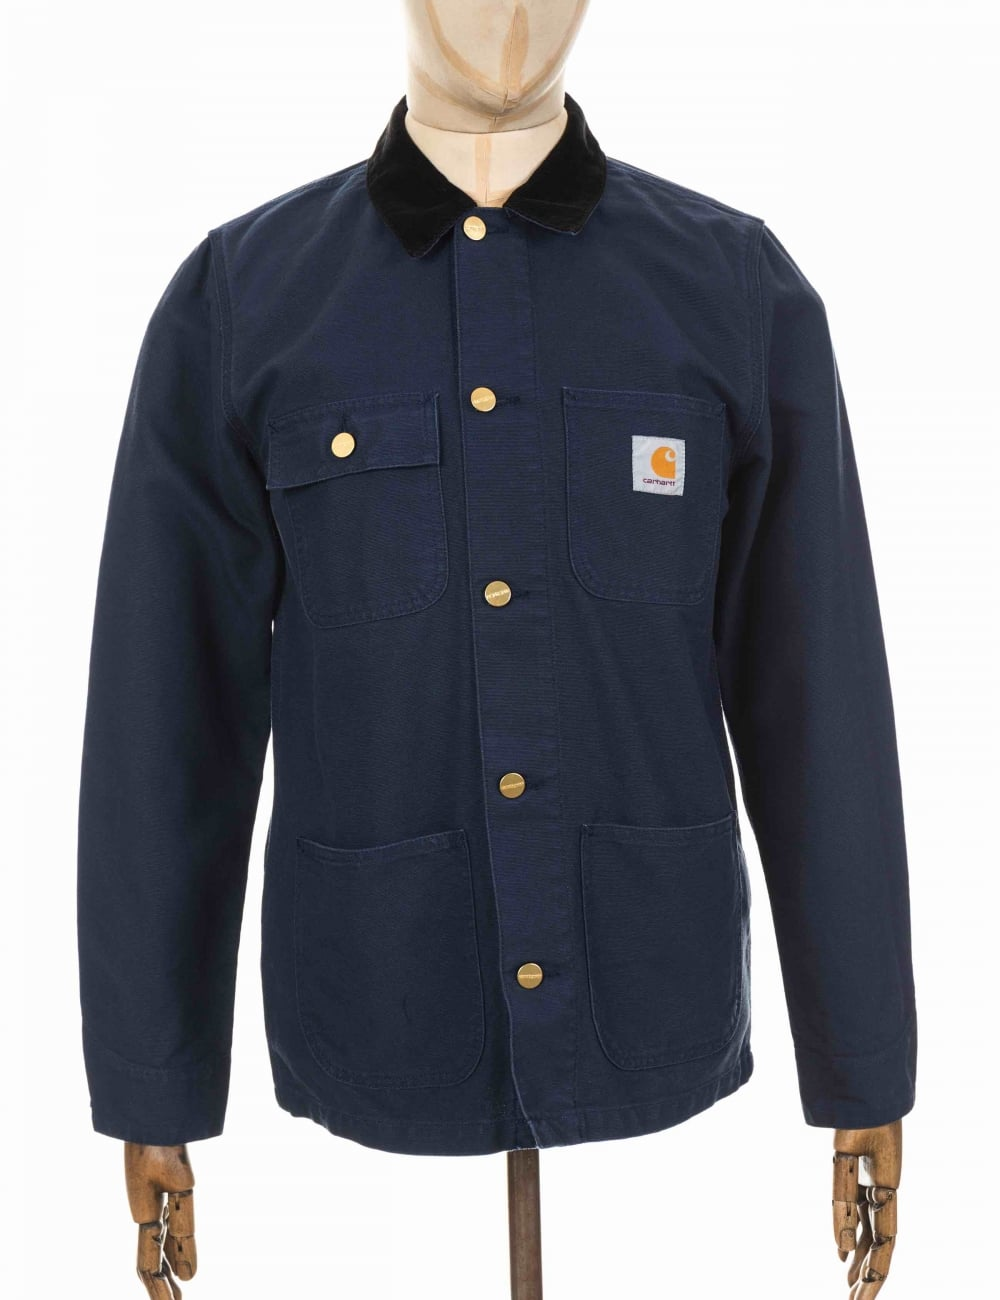 0363f6d95f8 Carhartt WIP Michigan Chore Coat - Navy/Black - Clothing from Fat .